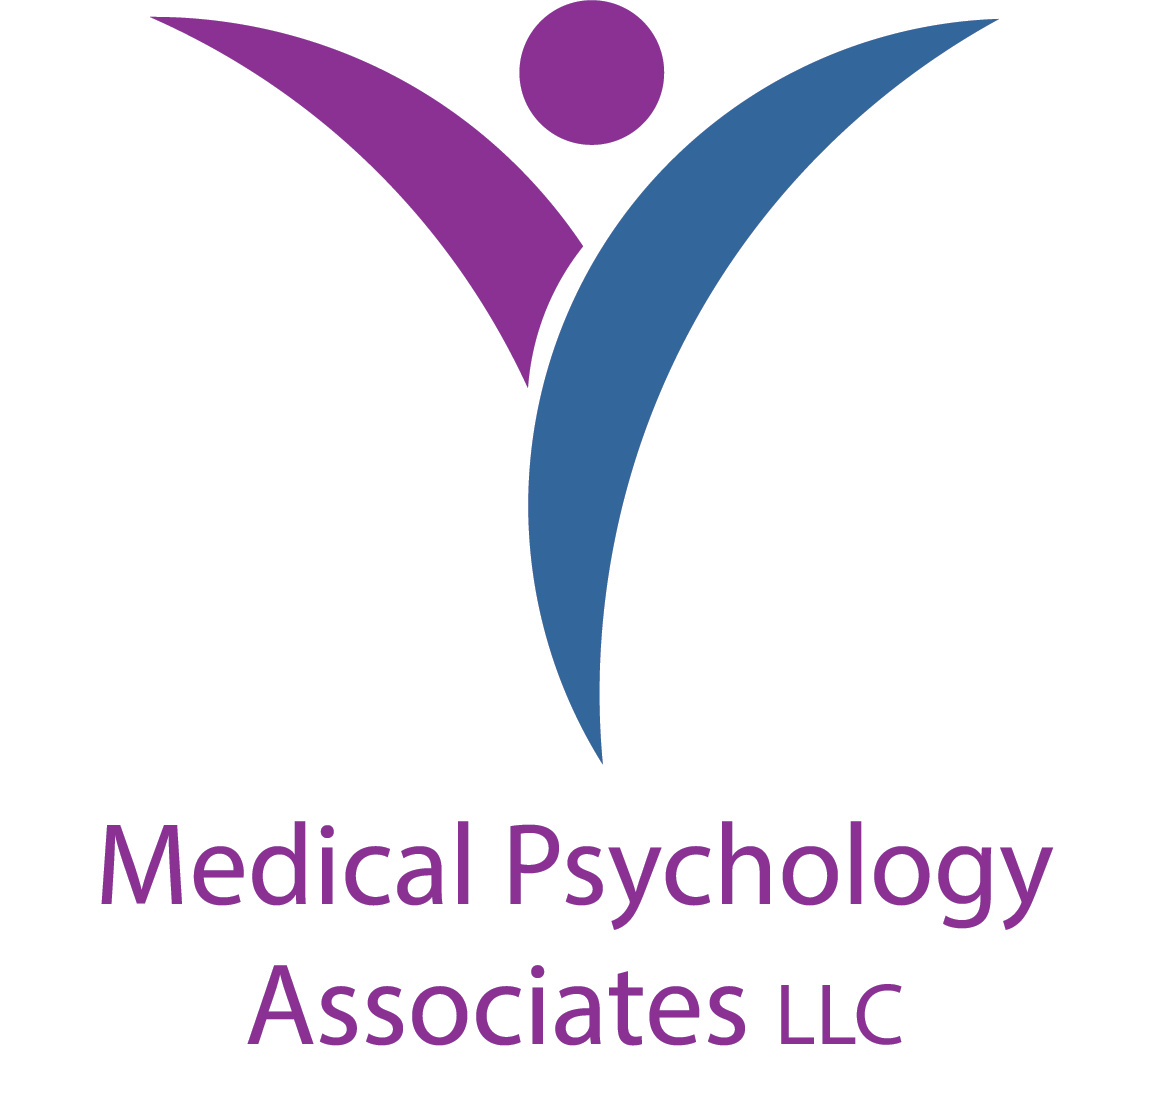 Medical Psychology Associates, LLC